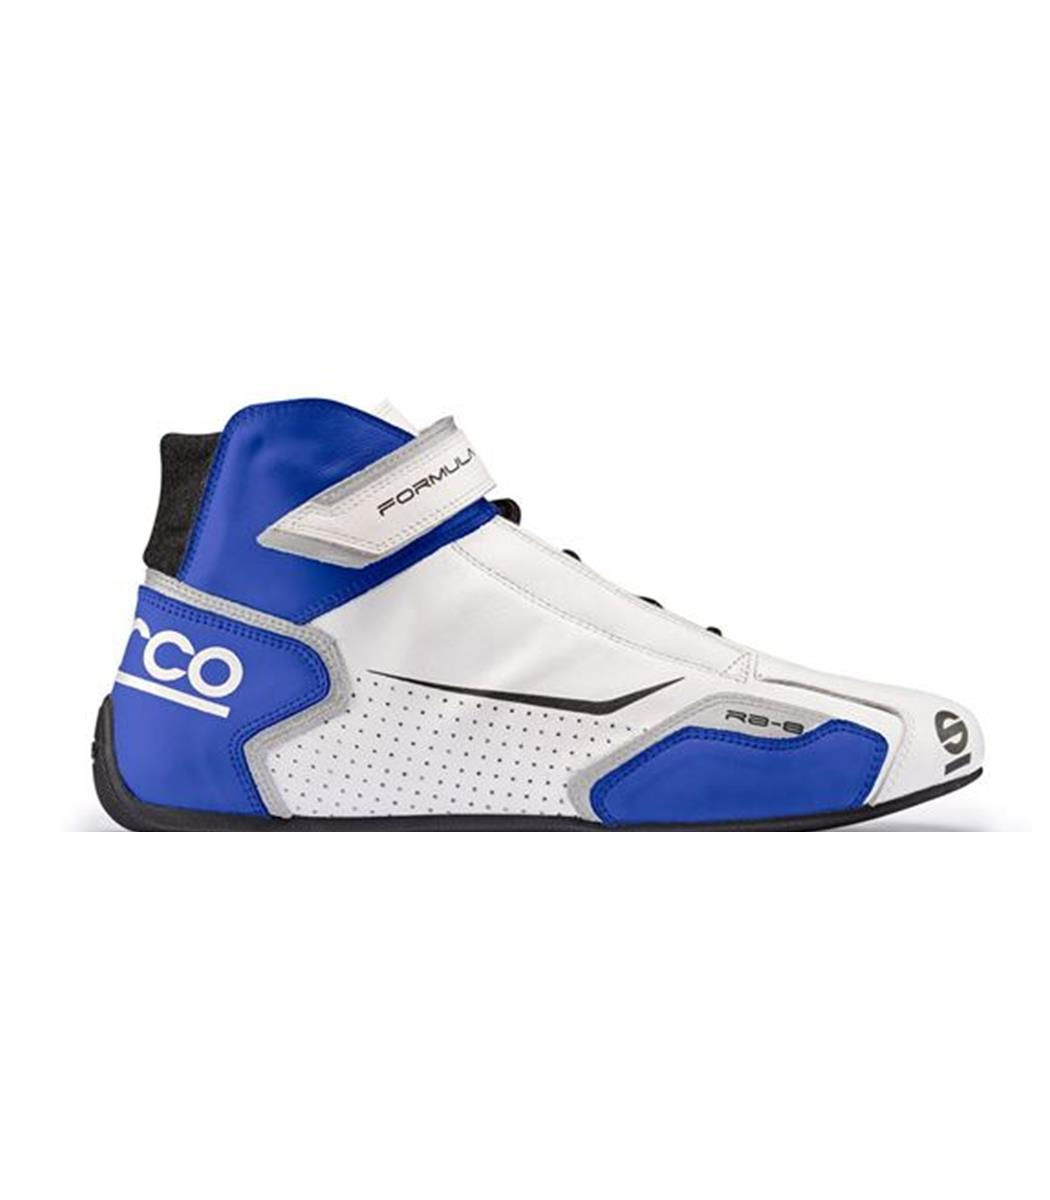 TRACK FIRST-Sparco Shoes-Sparco Formula RB-8 Racing Shoe f3cf91700